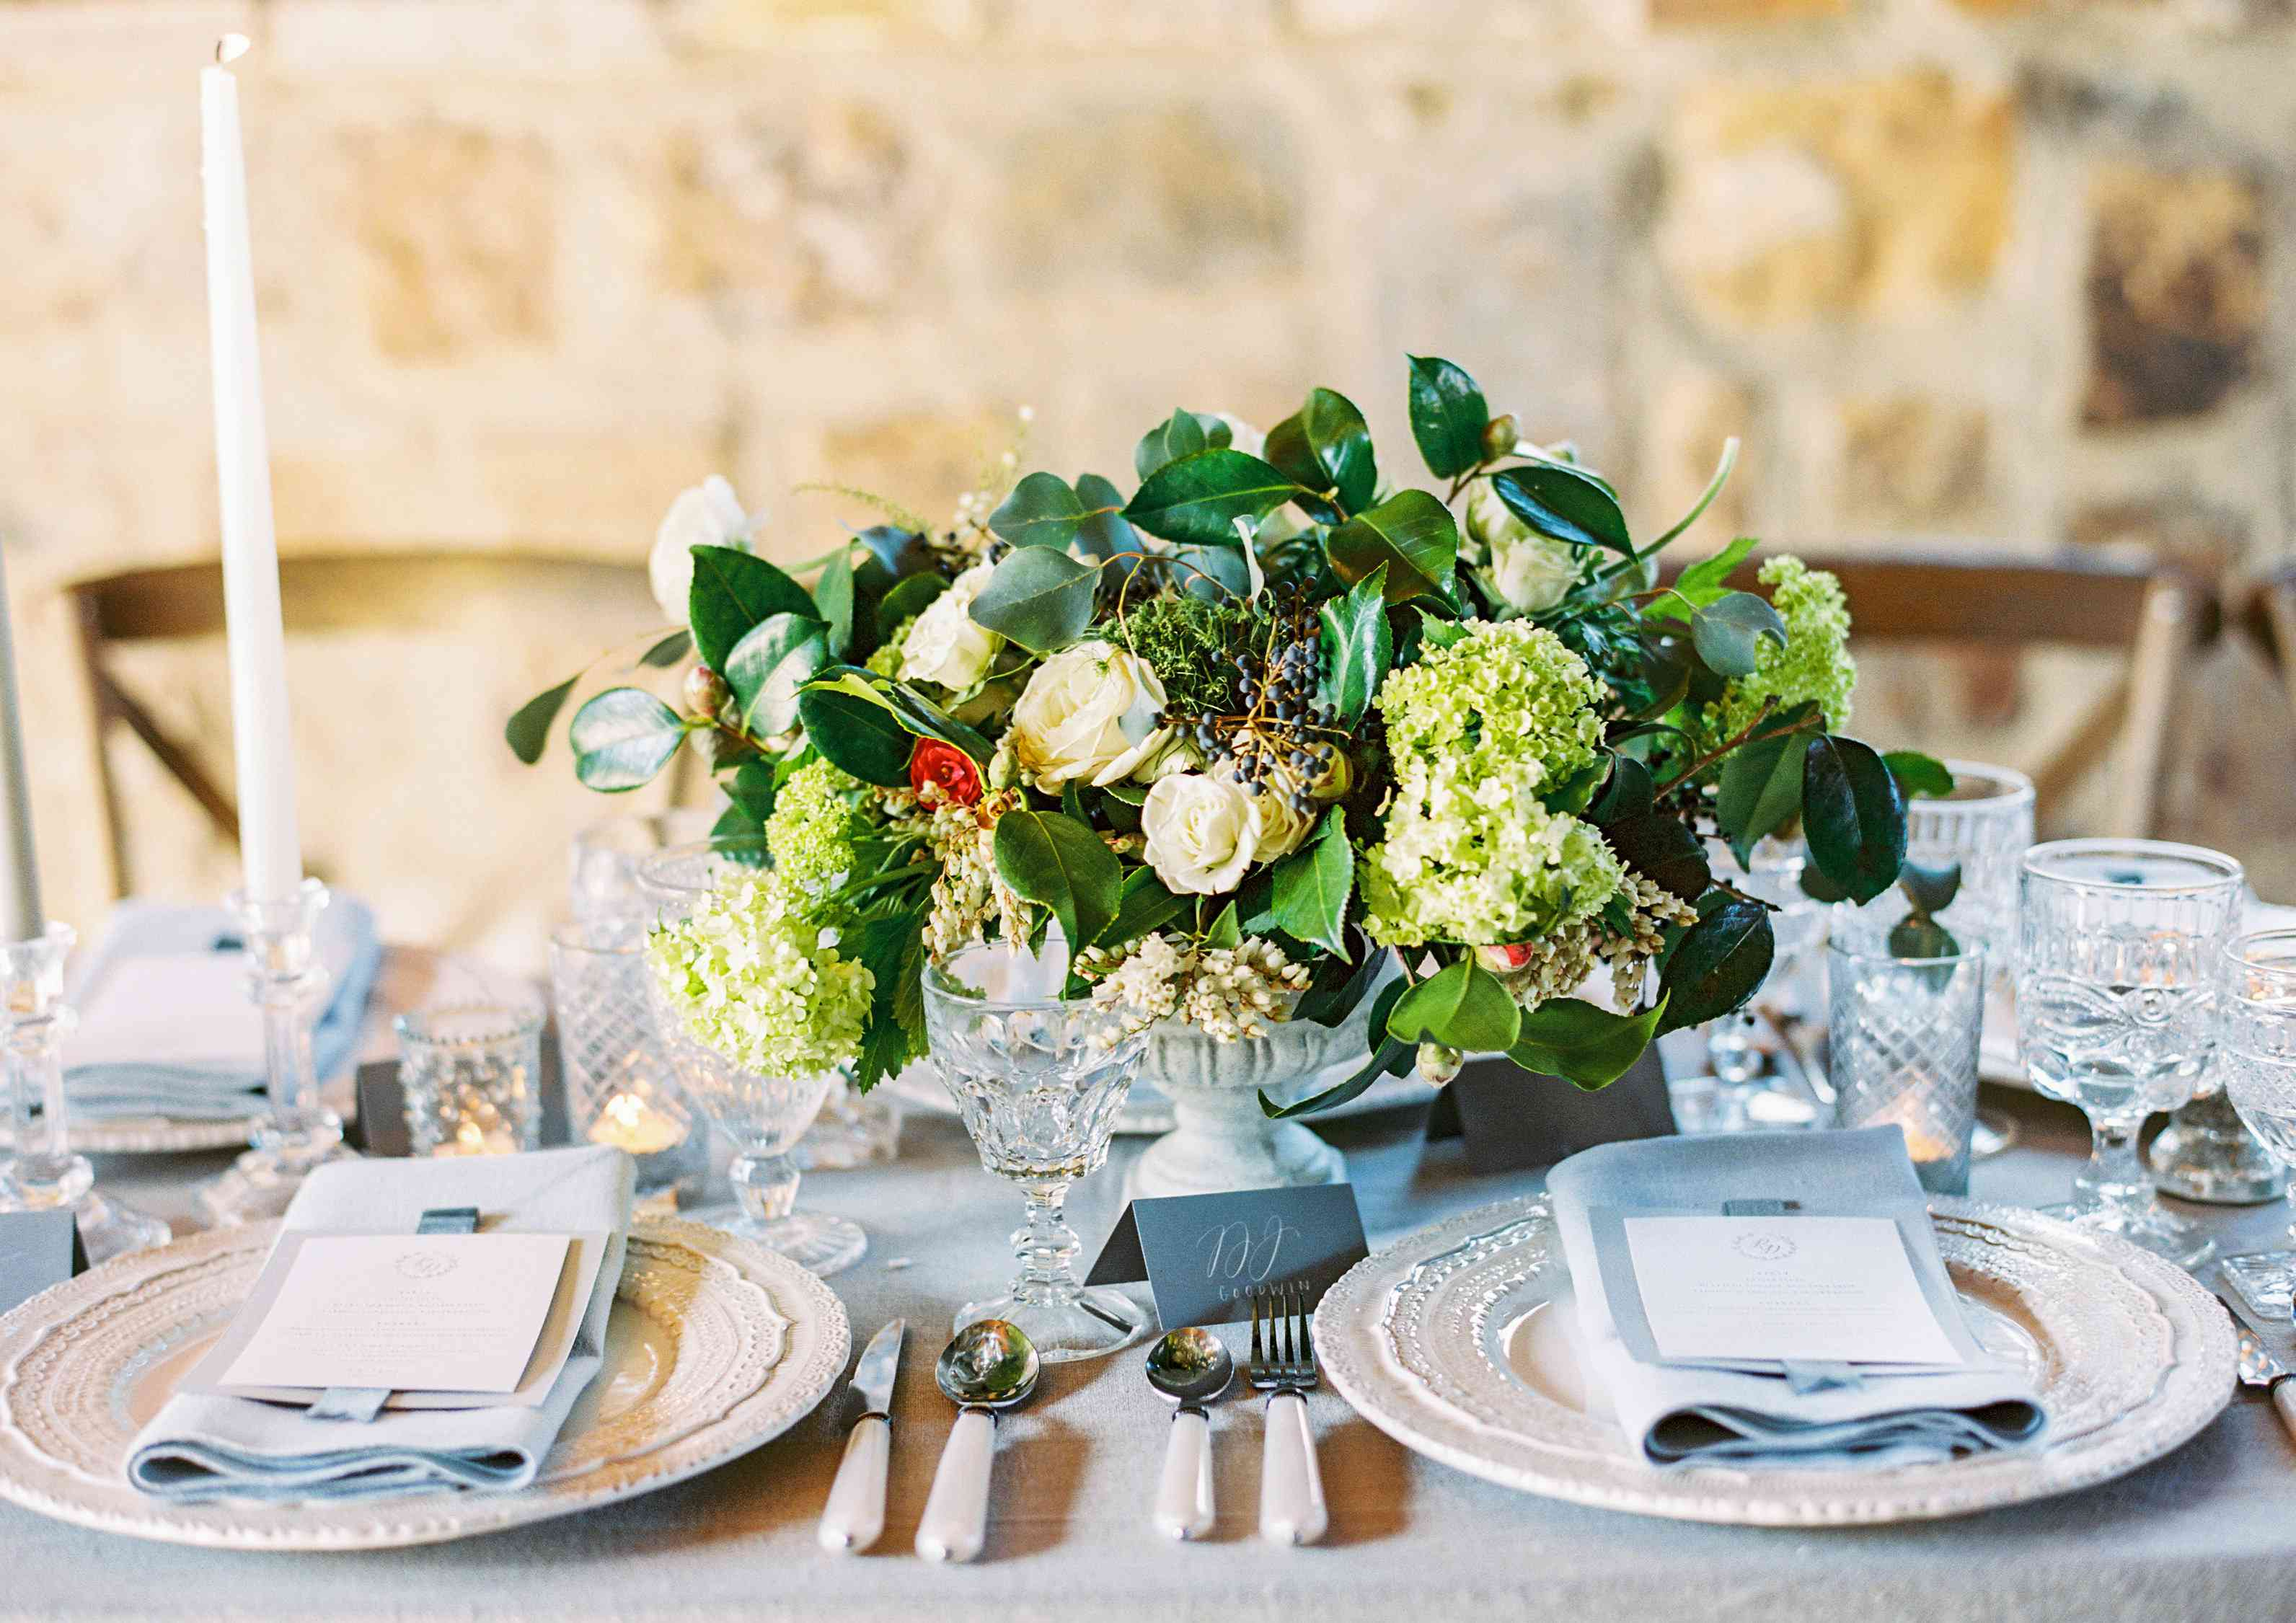 Greenery and White Rose Centerpieces